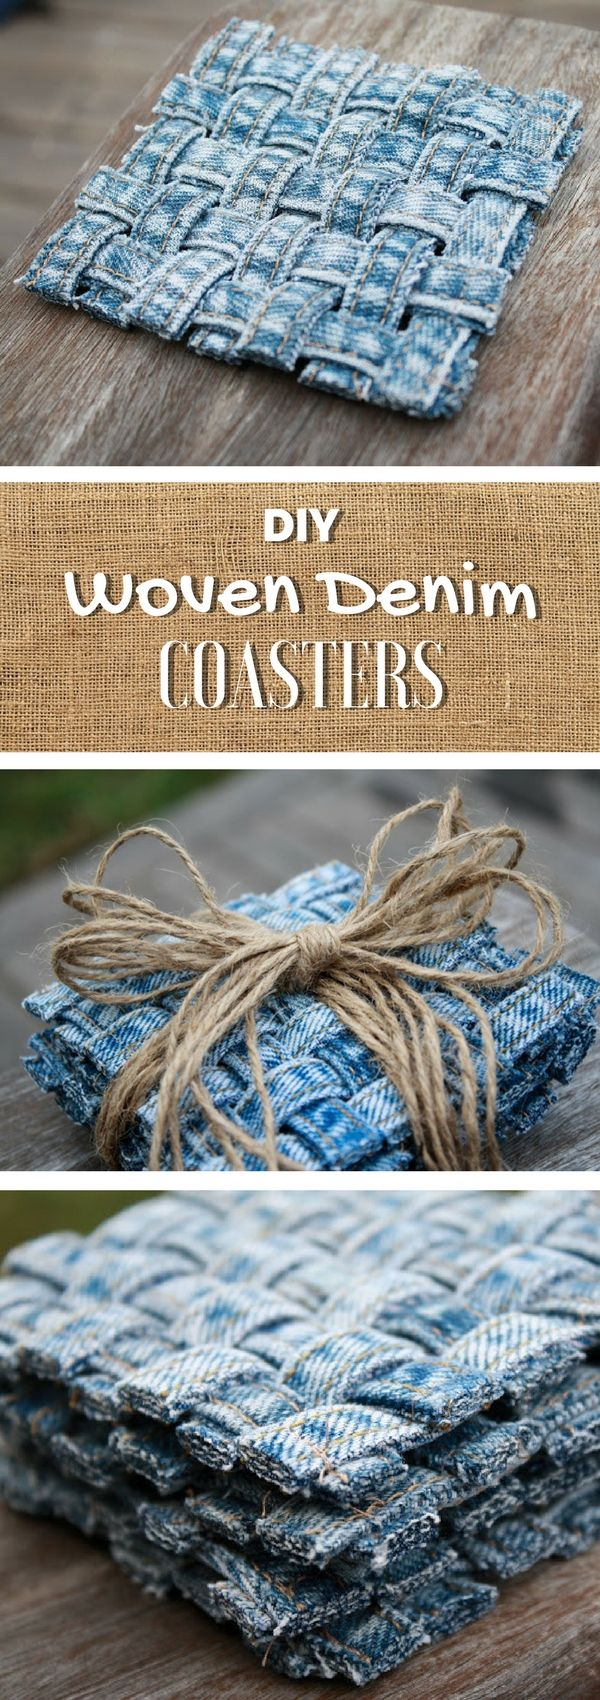 Check out this easy idea on how to make a decorative #DIY coaster from old jeans #homedecor on a #budget #crafts #dollarstore @istandarddesign